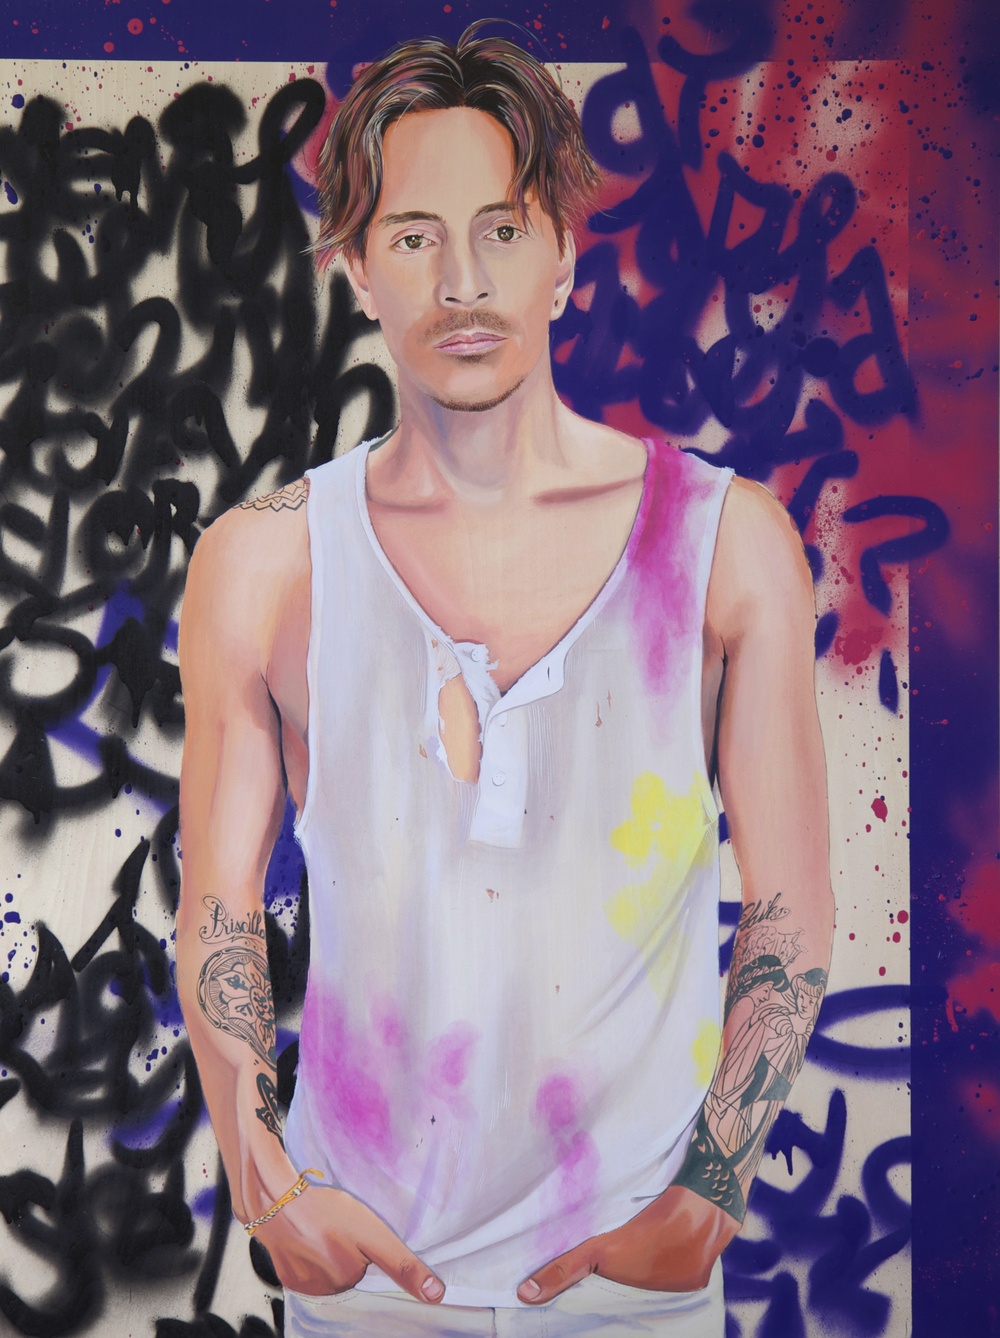 Brandon B, 2014, Acrylic and spray paint on wood panel